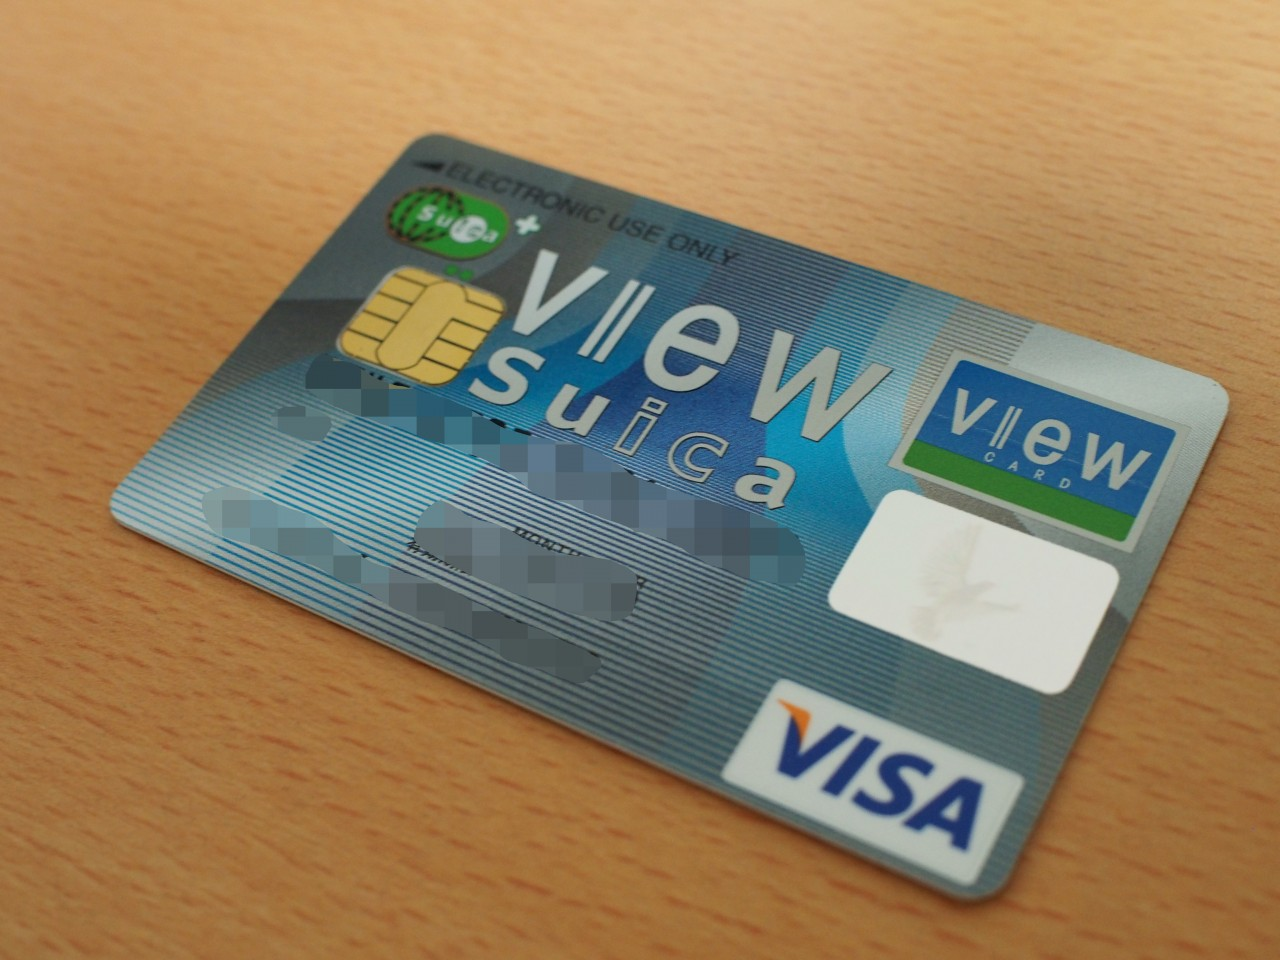 Image-view-Suica-credit-card